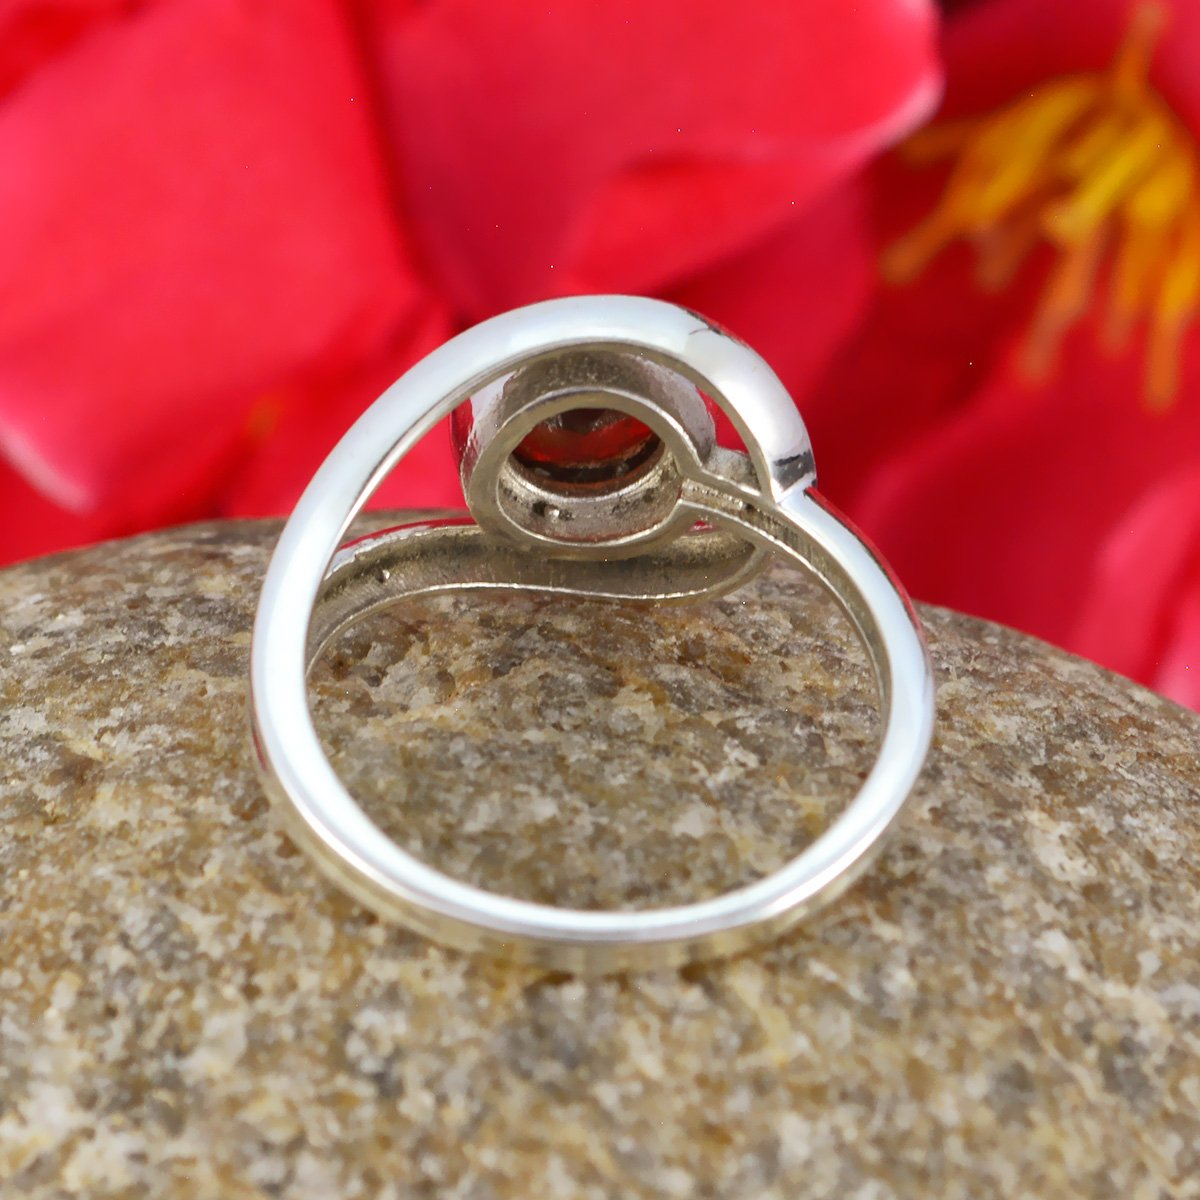 Nice Gemstone Round Faceted Garnets Rings - Solid Silber Red Garnets Nice Gemstone Ring - Supply Jewelry top Selling Shops Gift for Teachers Day Modern Stacking Ring -US 14.5 by RGPL (Image #4)